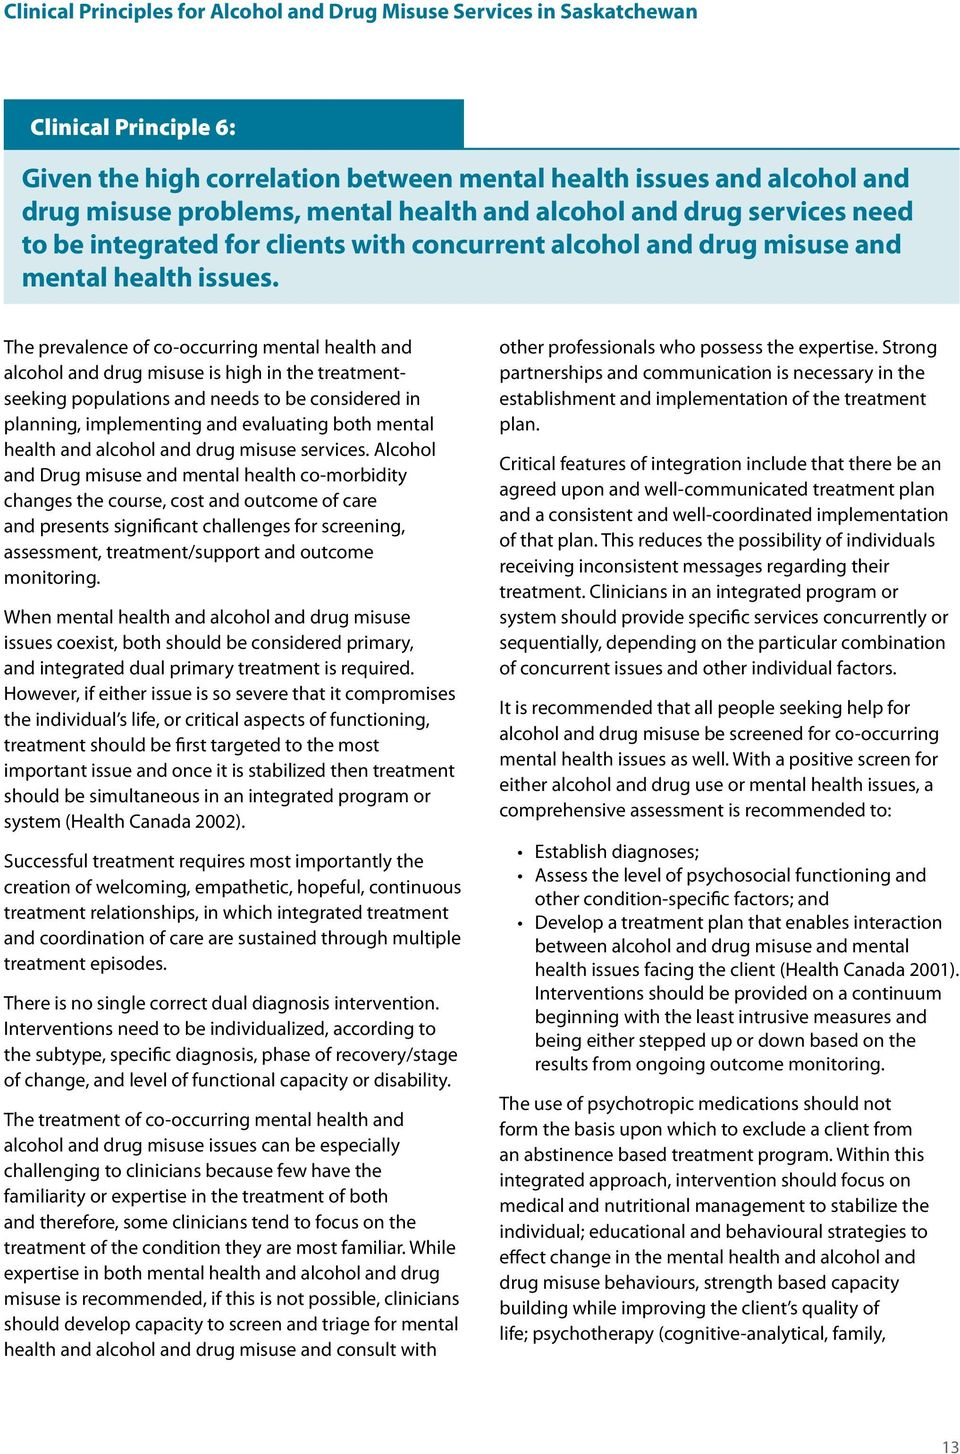 The prevalence of co-occurring mental health and alcohol and drug misuse is high in the treatmentseeking populations and needs to be considered in planning, implementing and evaluating both mental